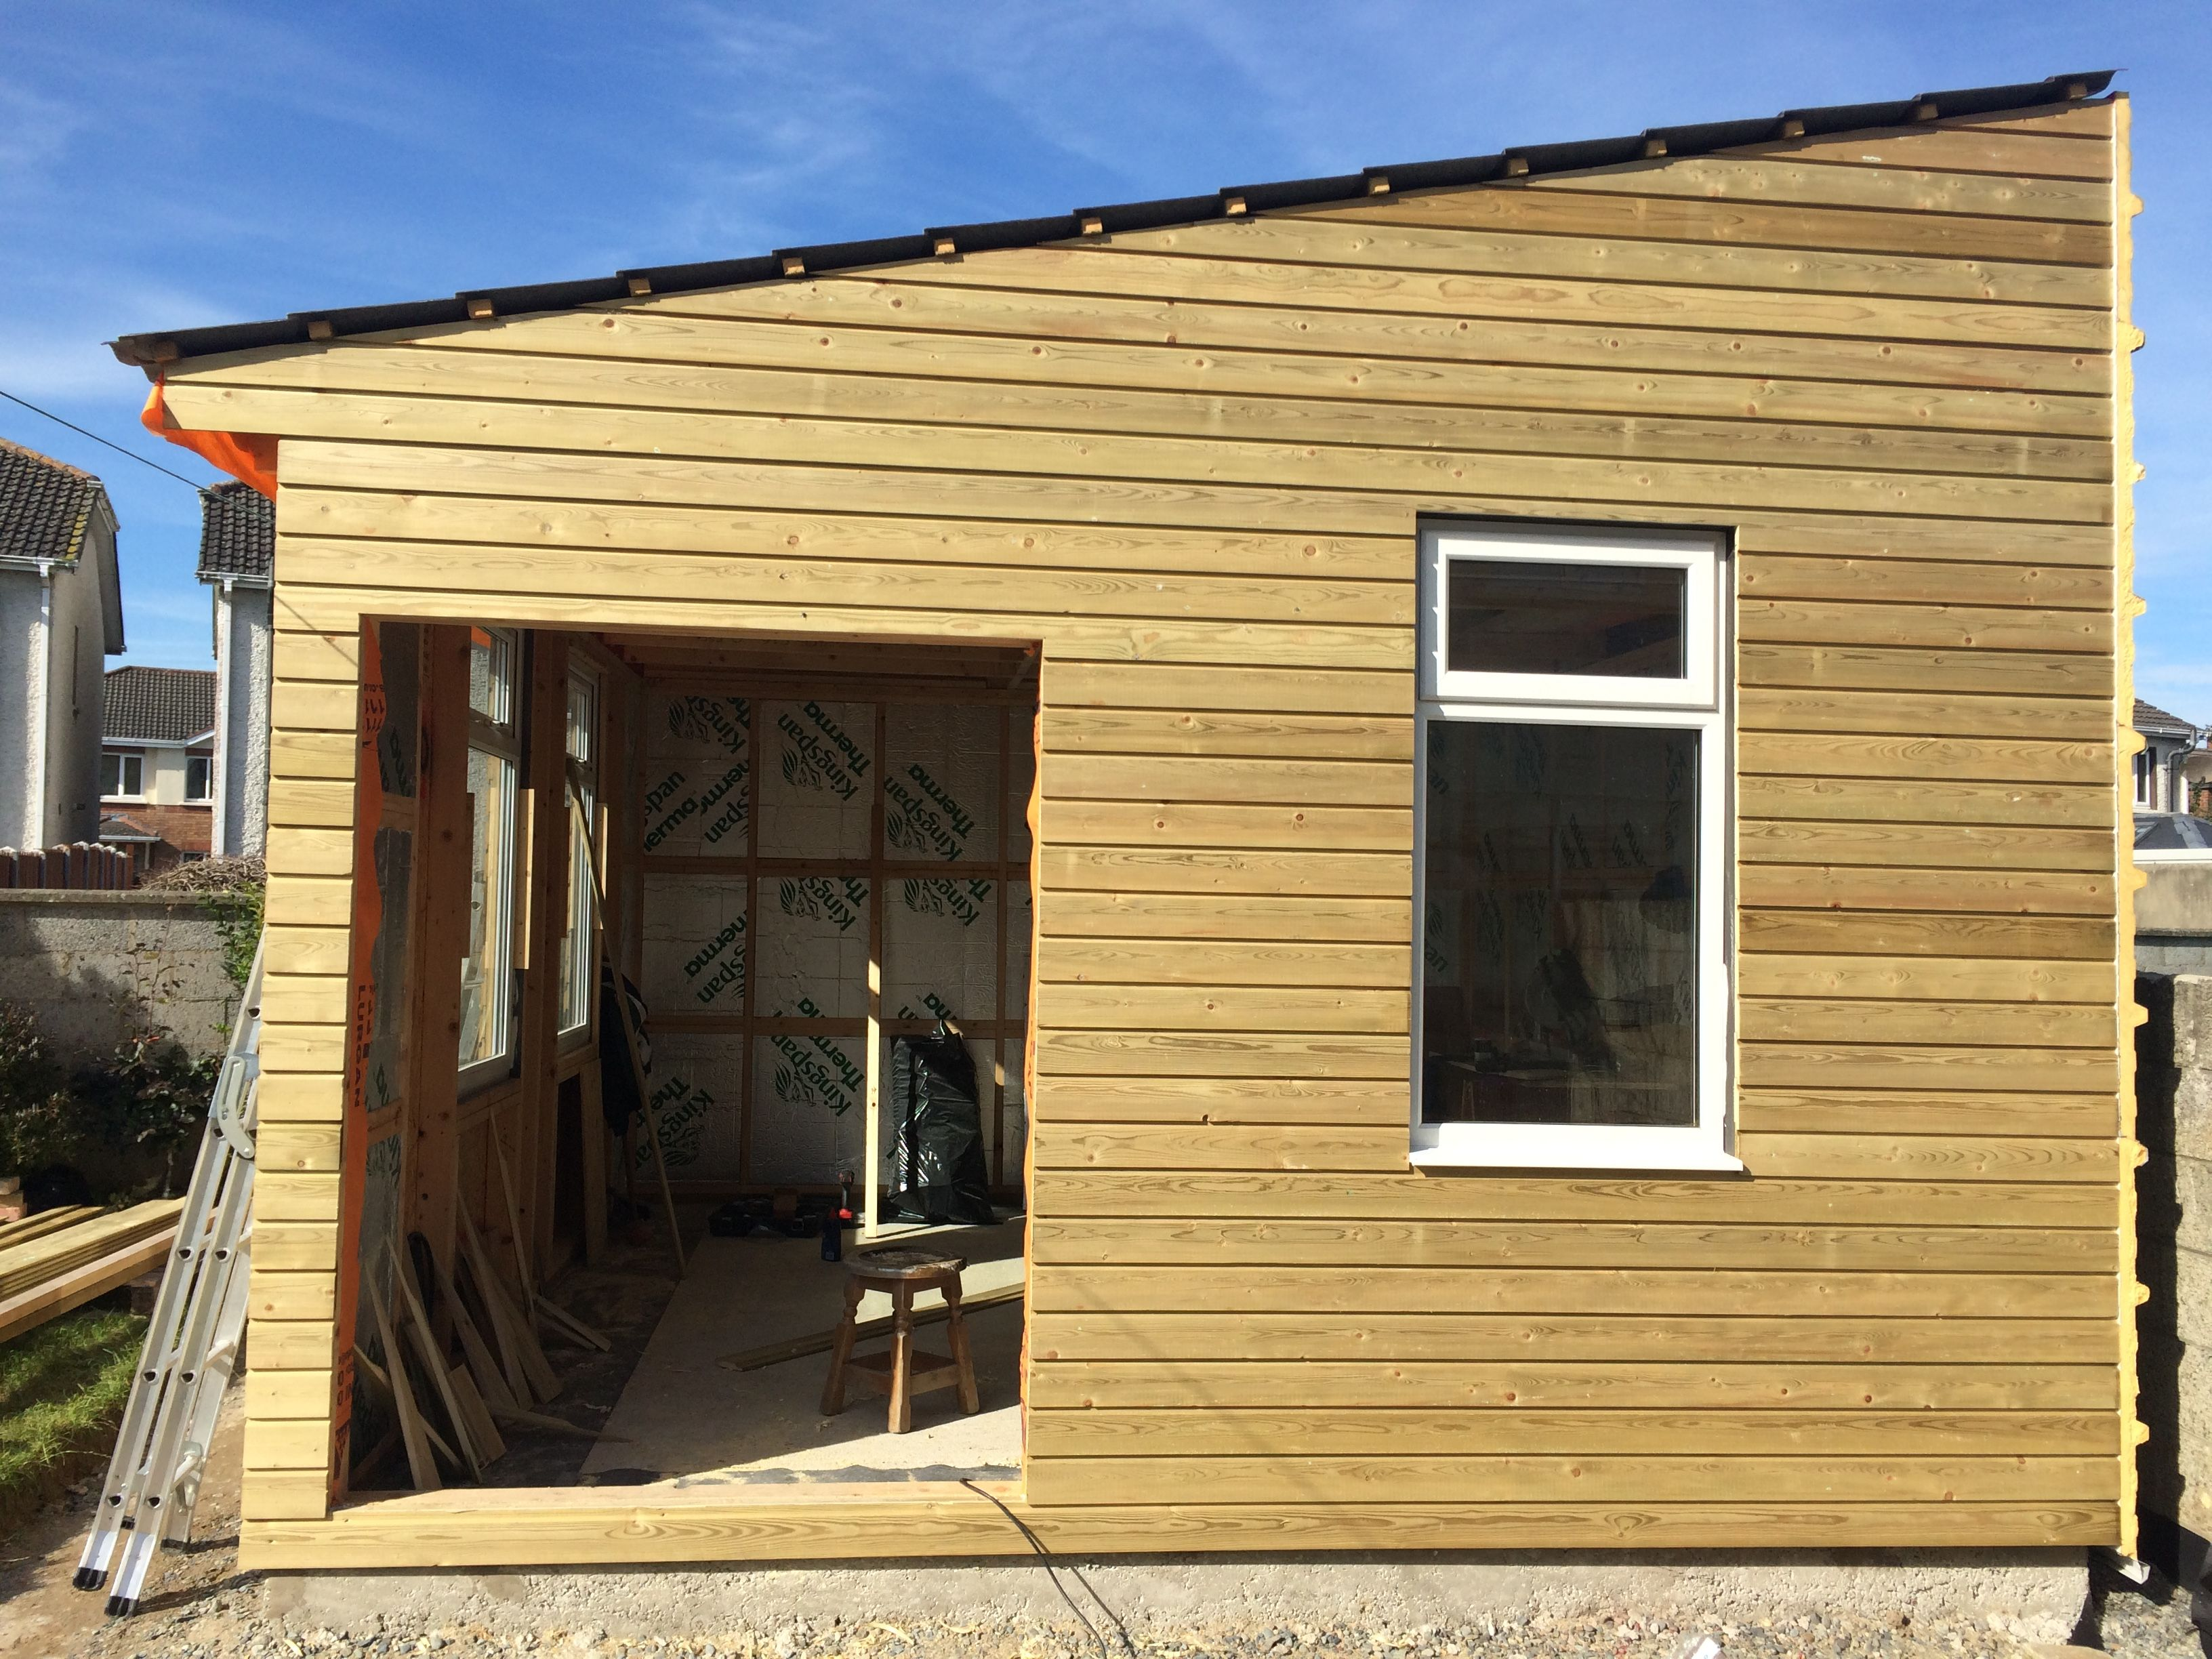 studio complete the erica bathroom guest sheds shed ghostly pin house reflection with